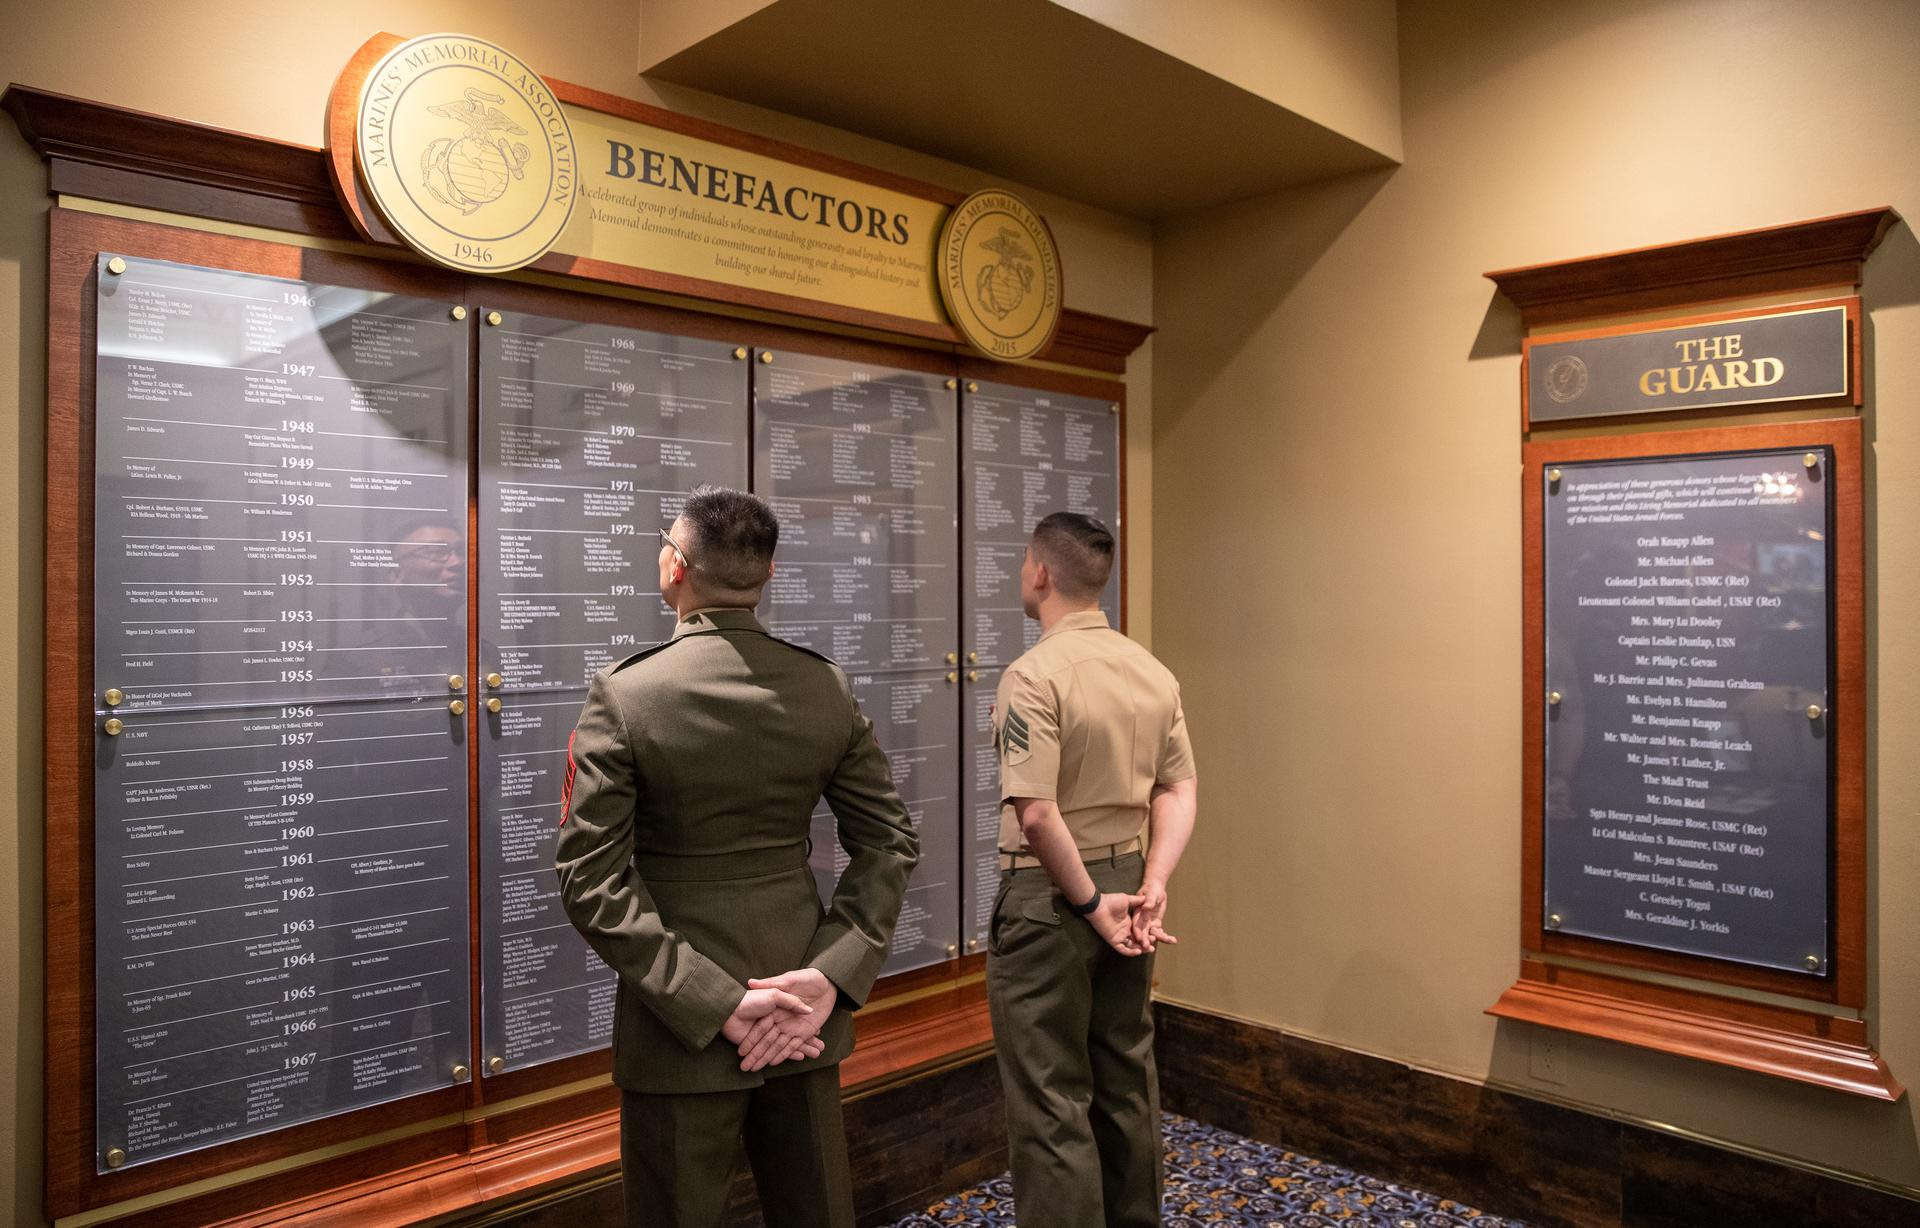 Marines and Benefactor Wall